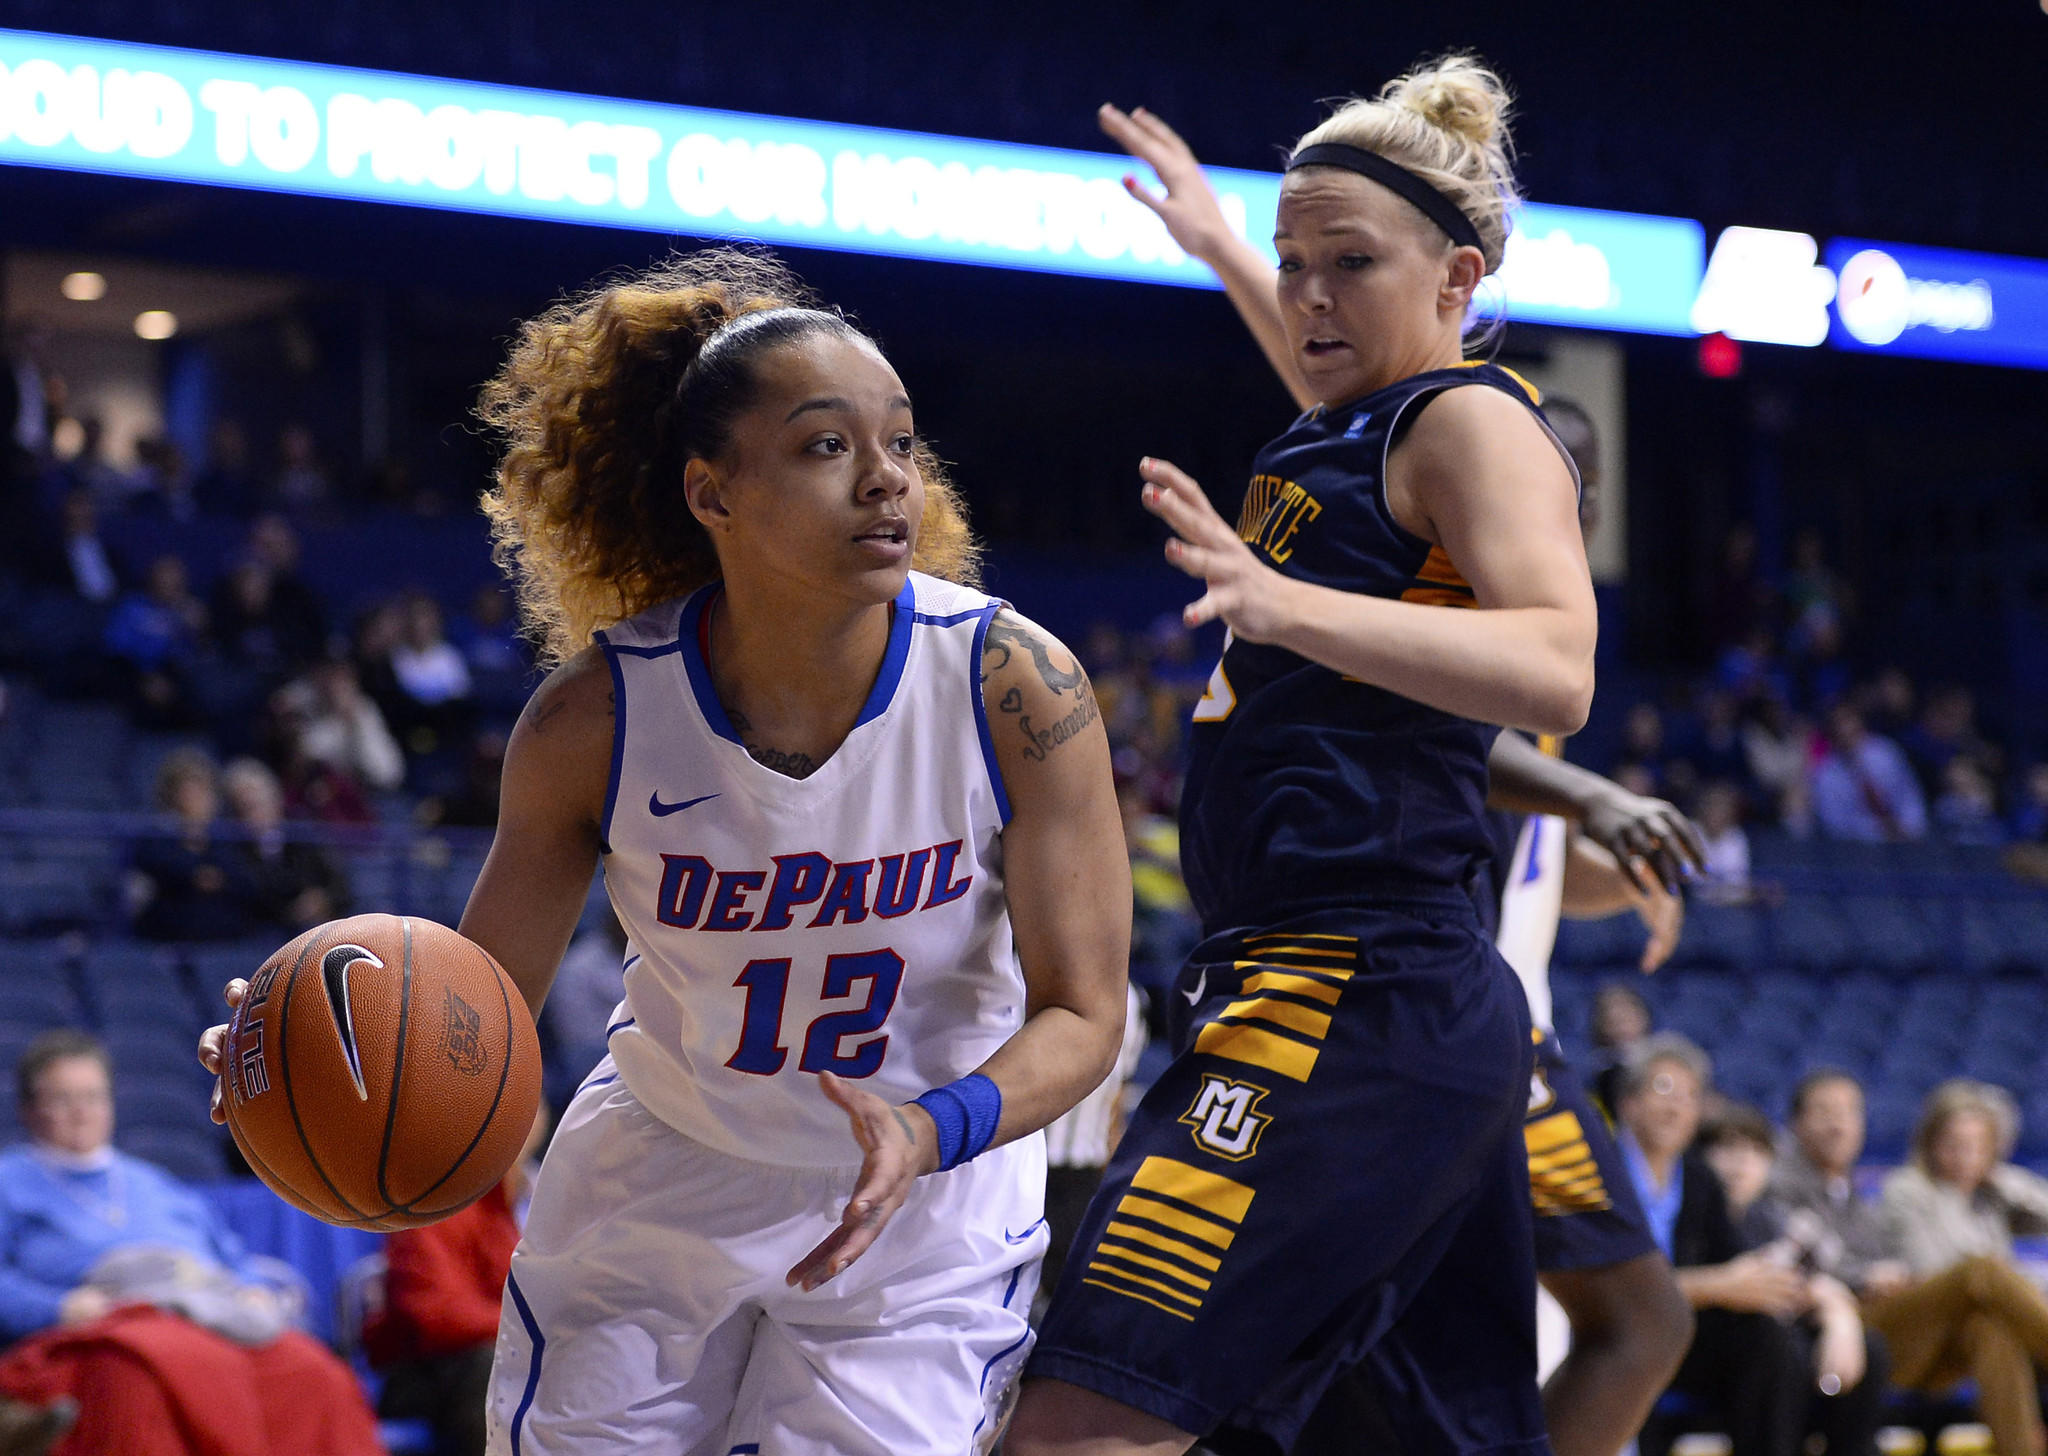 DePaul's Brittany Hrynko dribbles the ball against Marquette's Brooklyn Pumroy during the first half at Allstate Arena.